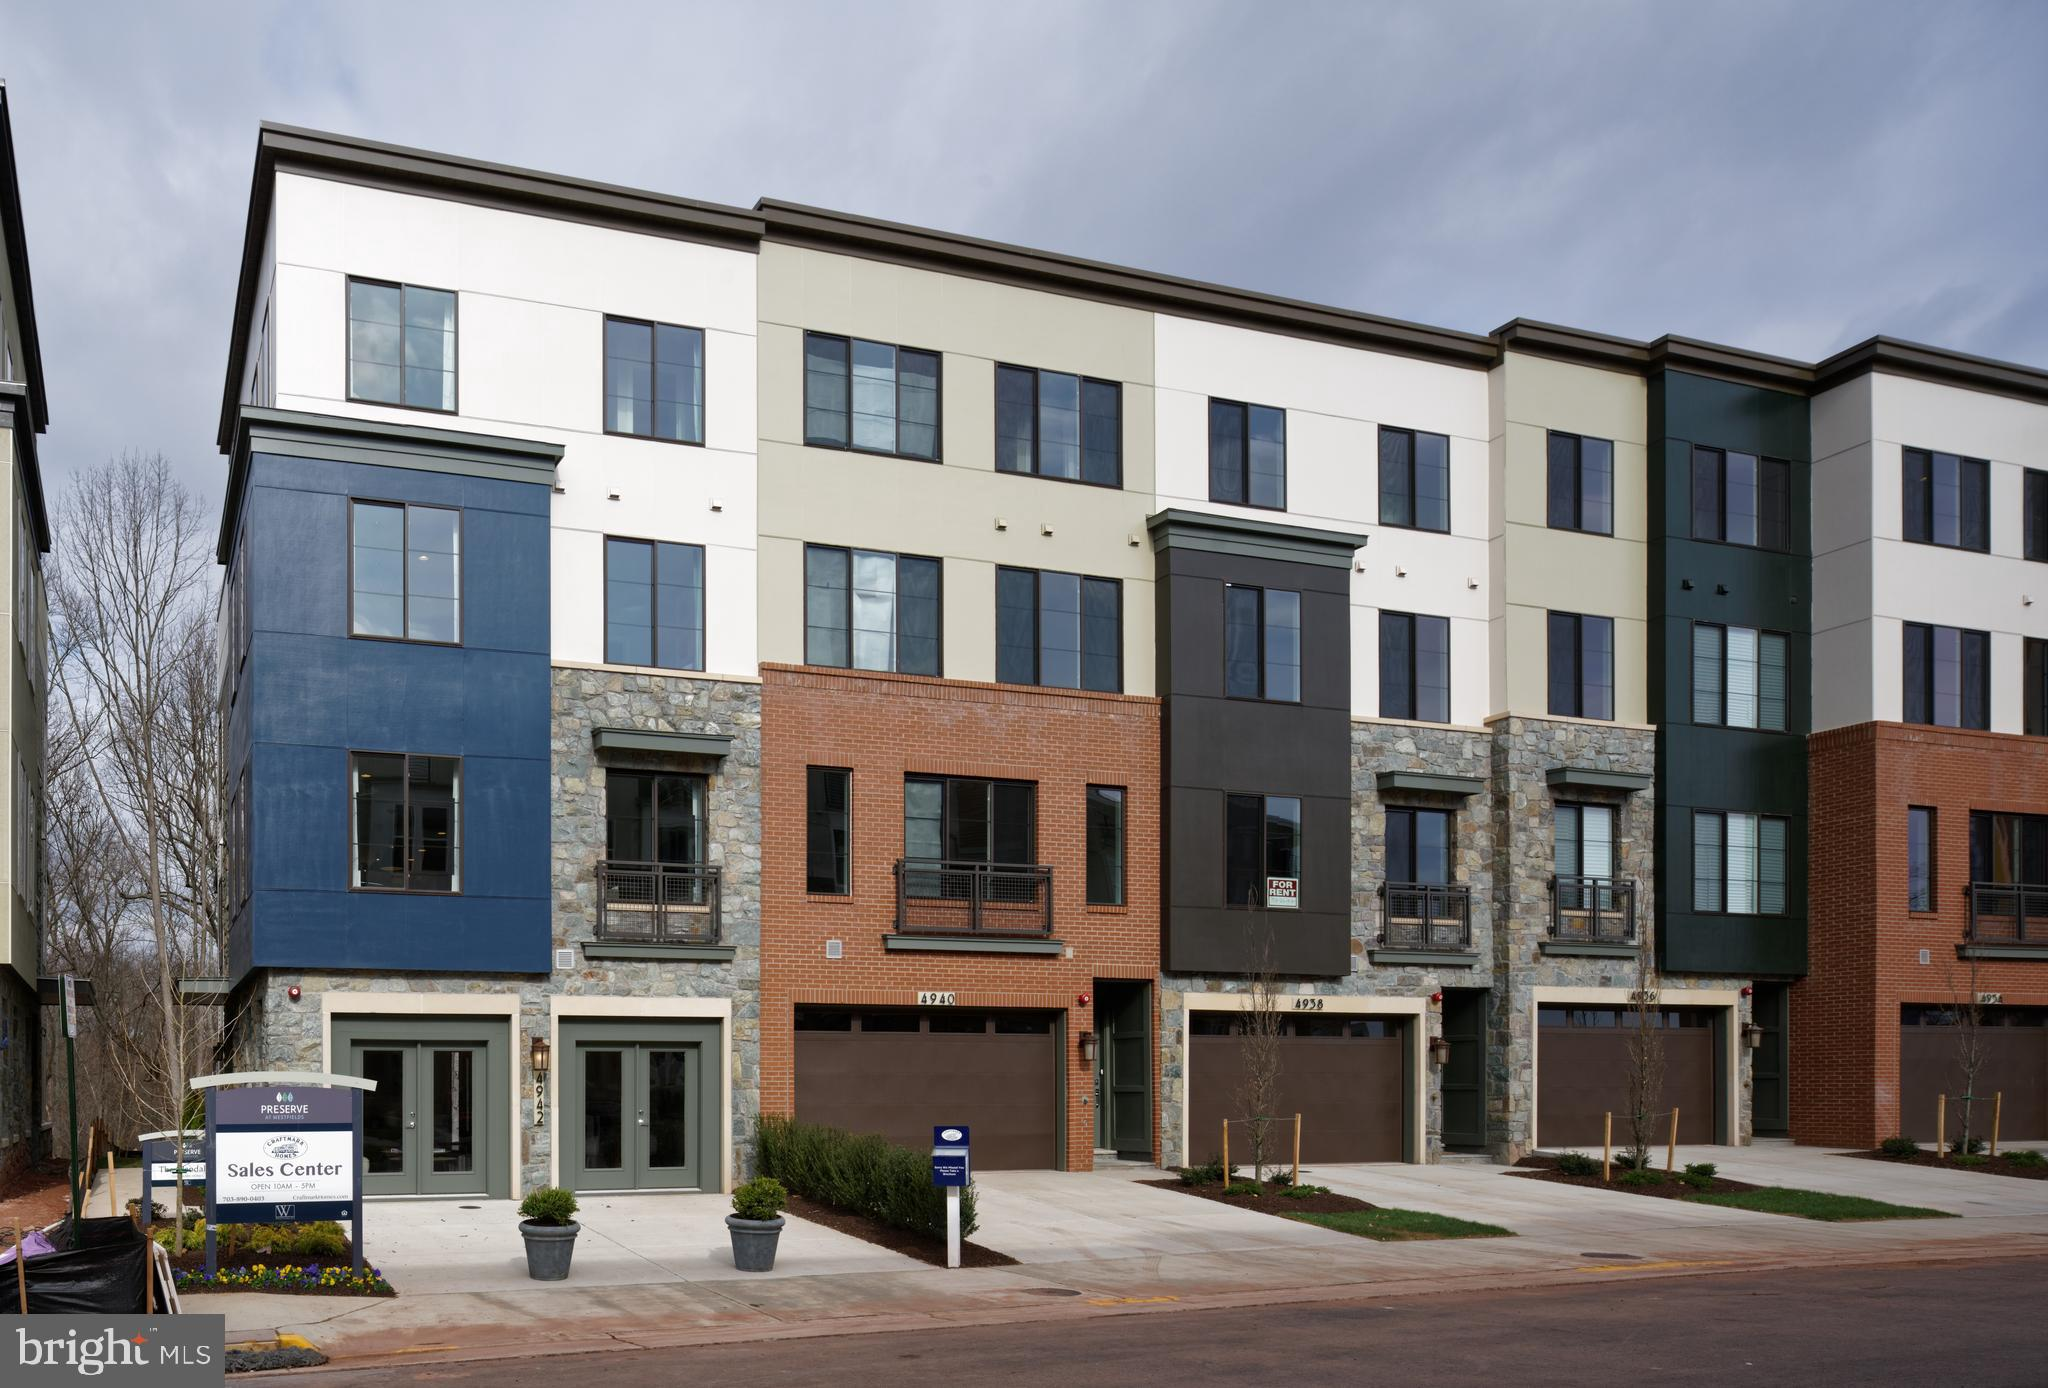 CRAFTMARK HOMES-NEW 2 Car Garage Rooftop Terrace Towns. Best Value in Alex/FFX Co. Energy Star High Quality Construction. Must See High End Inc. Features. Ask about Closing Costs/Incentives. Call Lori Windsor for details. Summer/Fall Move-in.